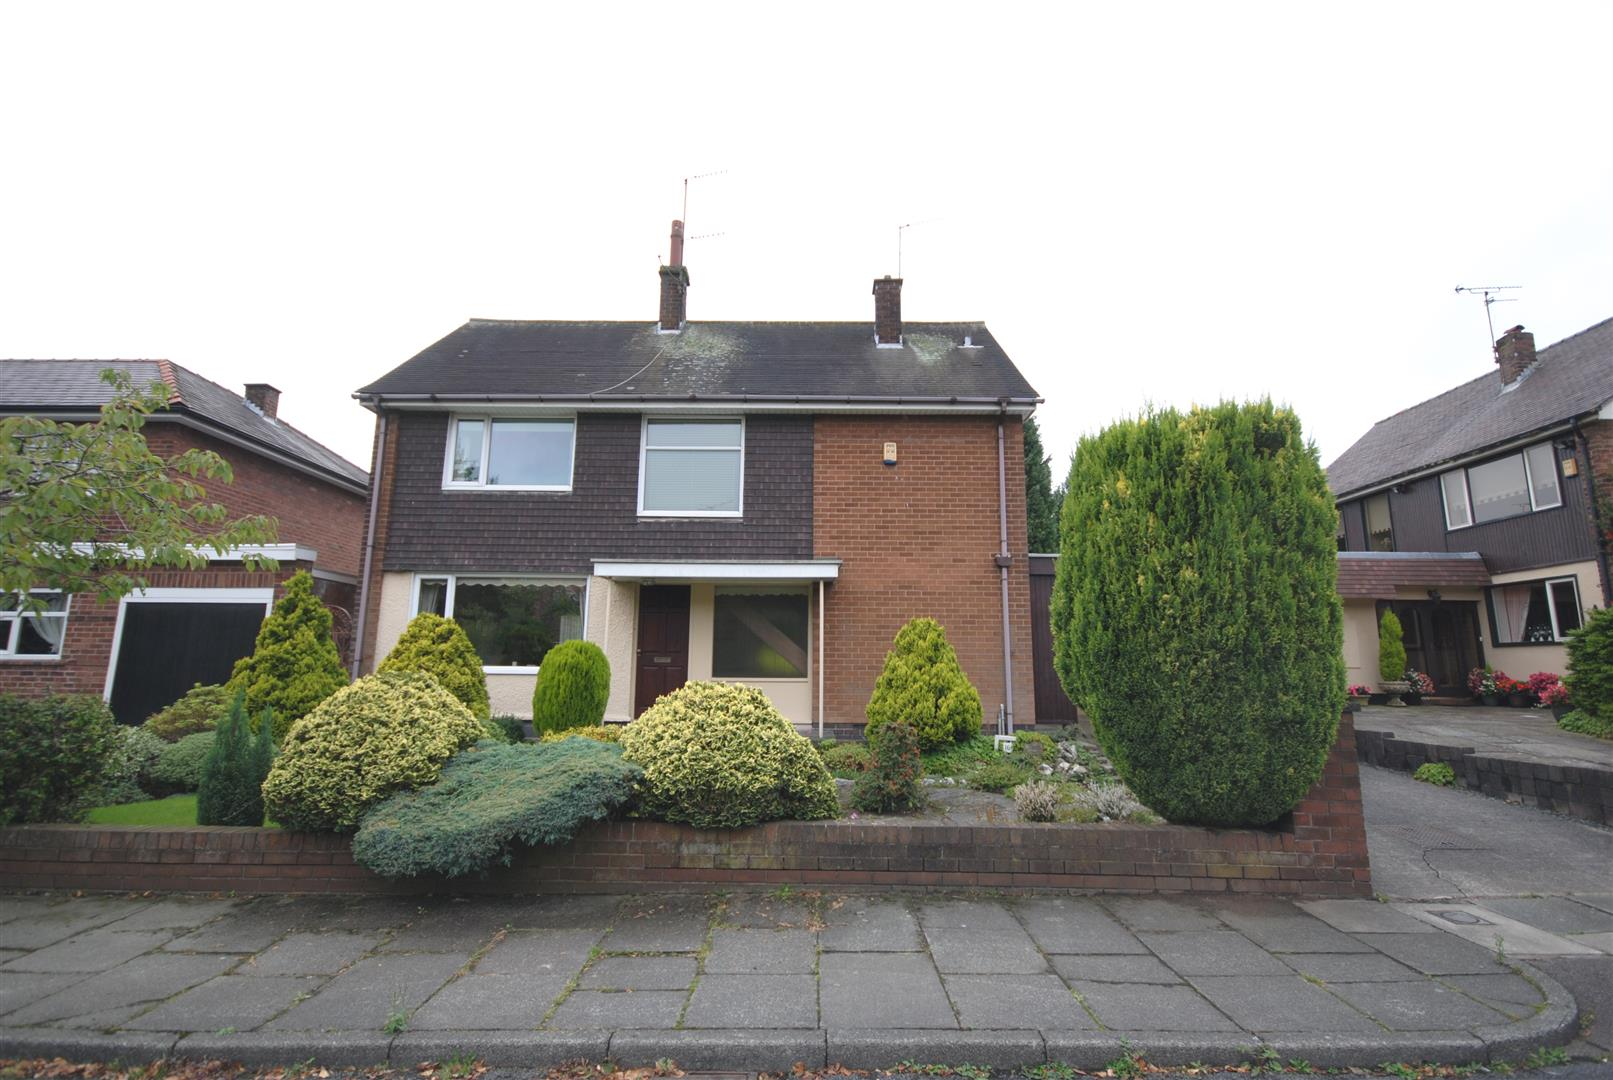 3 Bedrooms Detached House for sale in Wordsworth Avenue, Swinley, Wigan